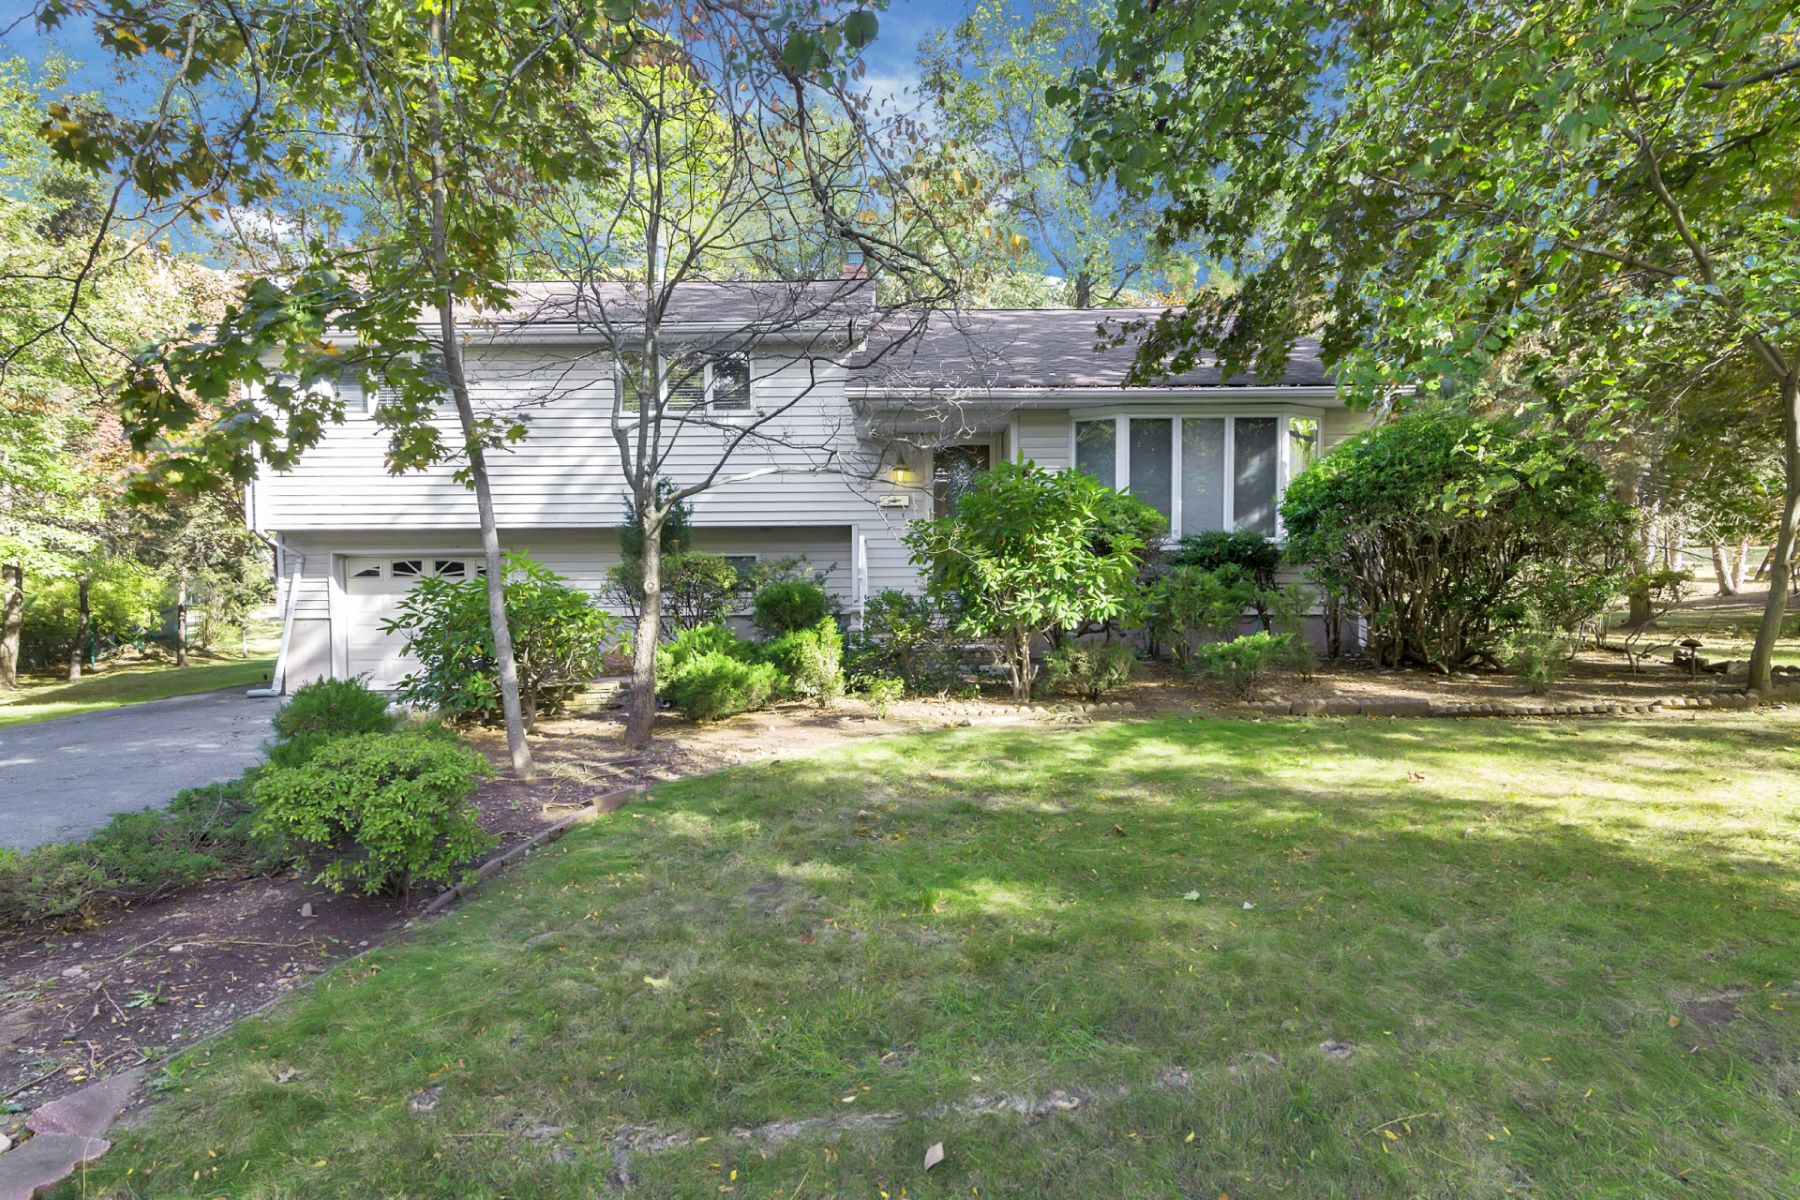 Single Family Home for Sale at Excellent Location 25 Sherman Ave Closter, New Jersey 07624 United States